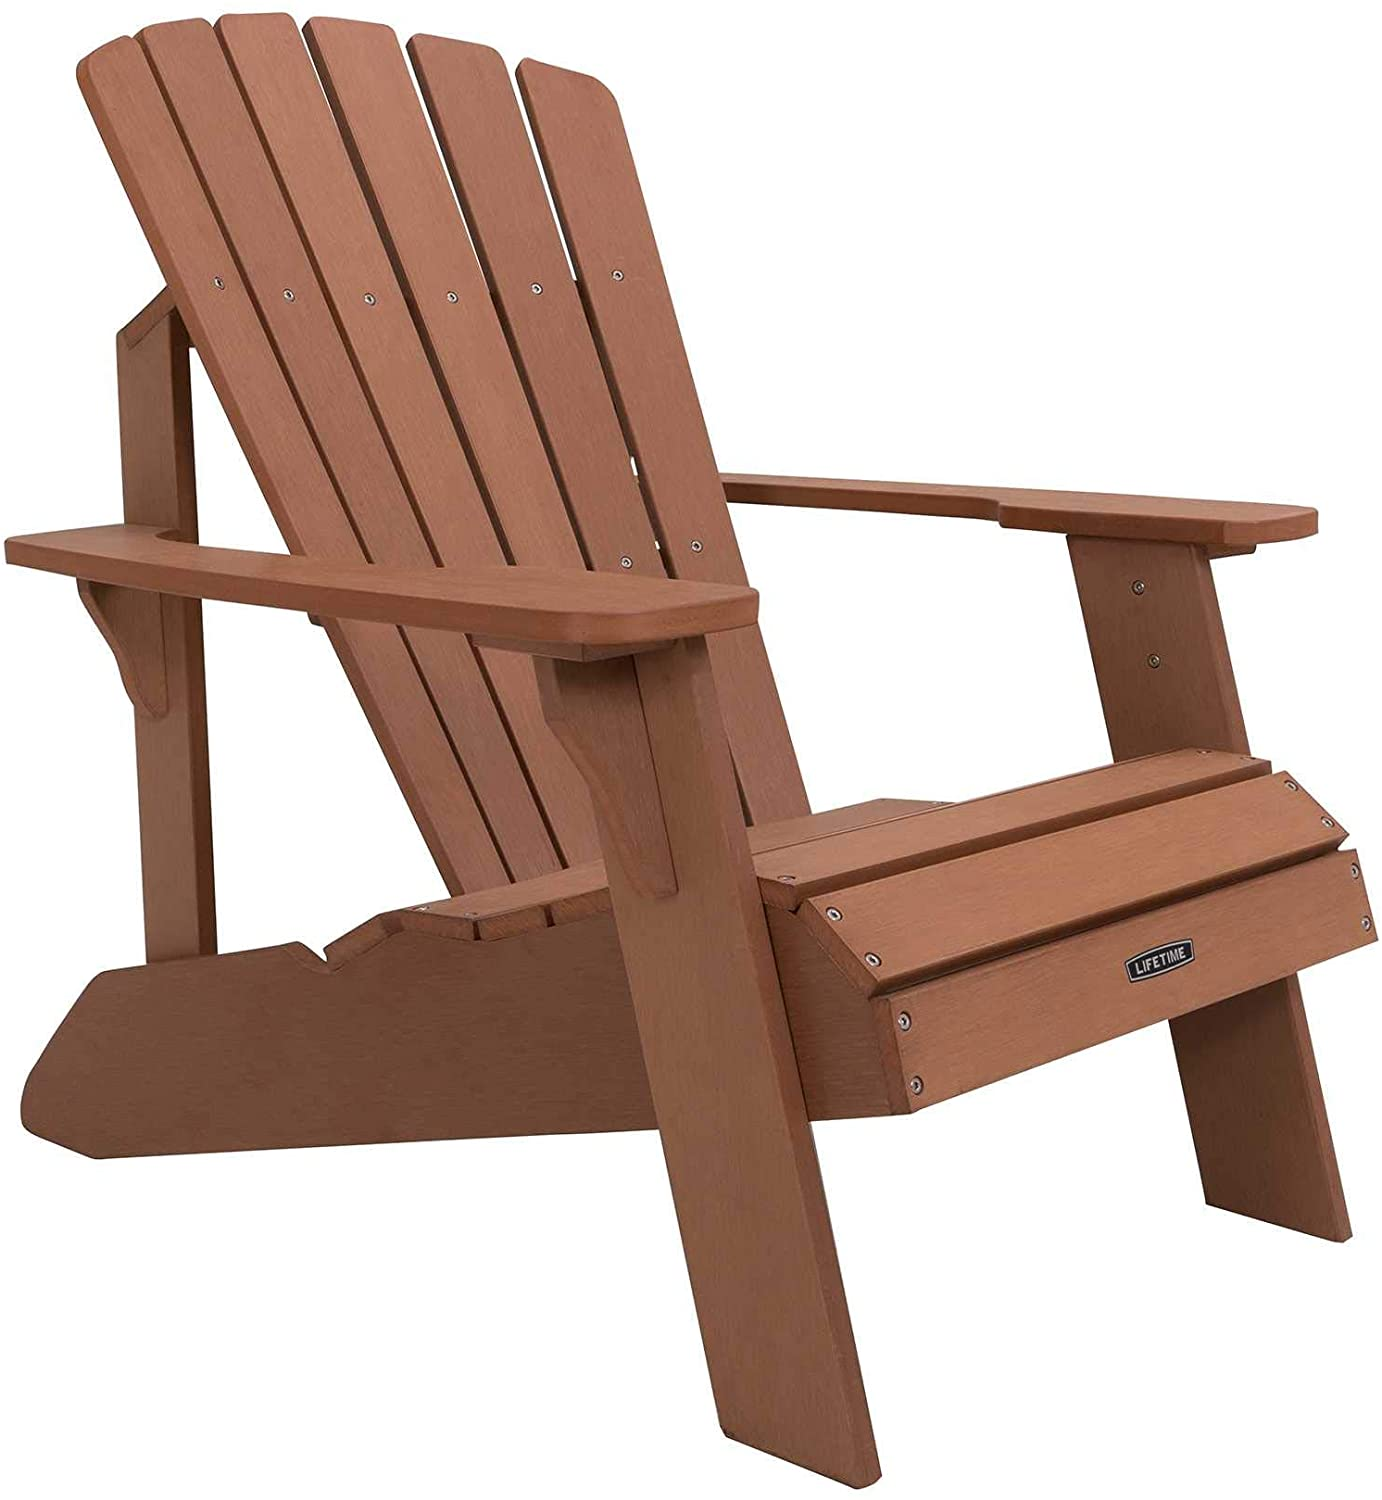 Review of Lifetime Faux Wood Adirondack Chair, Brown - 60064